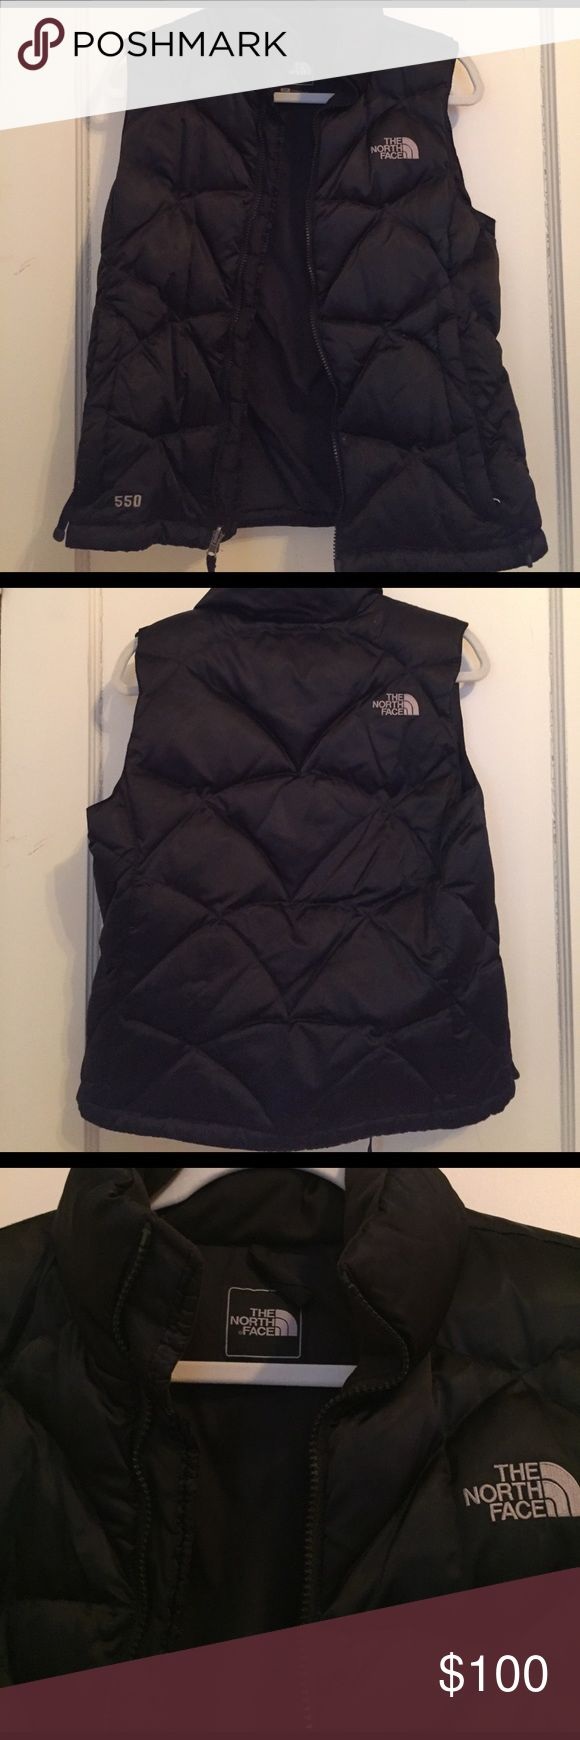 Size small North Face down vest in black. Hardly used North Face down vest in black. Great for fall weather and football games! It's a size small. North Face Jackets & Coats Vests